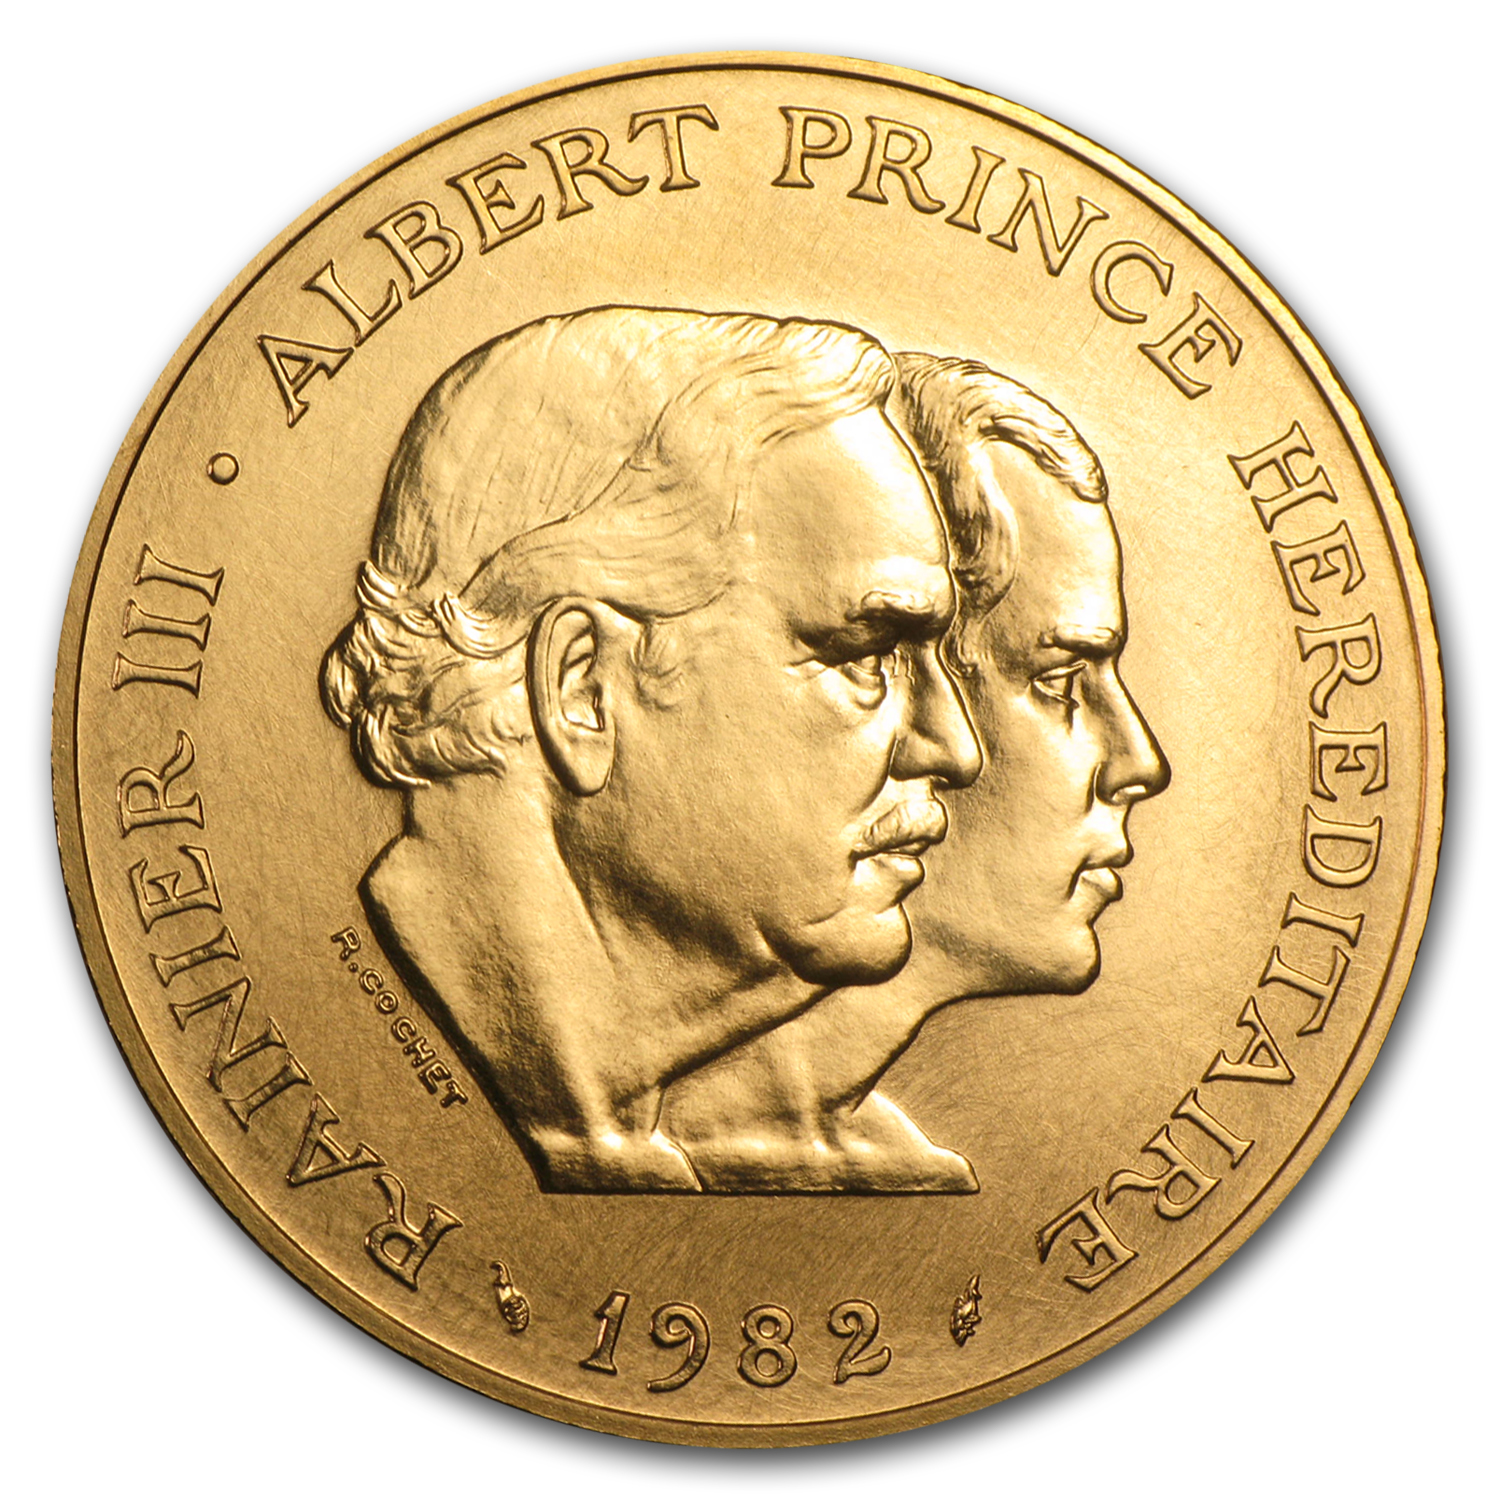 1982 Monaco Gold 100 Francs Princes